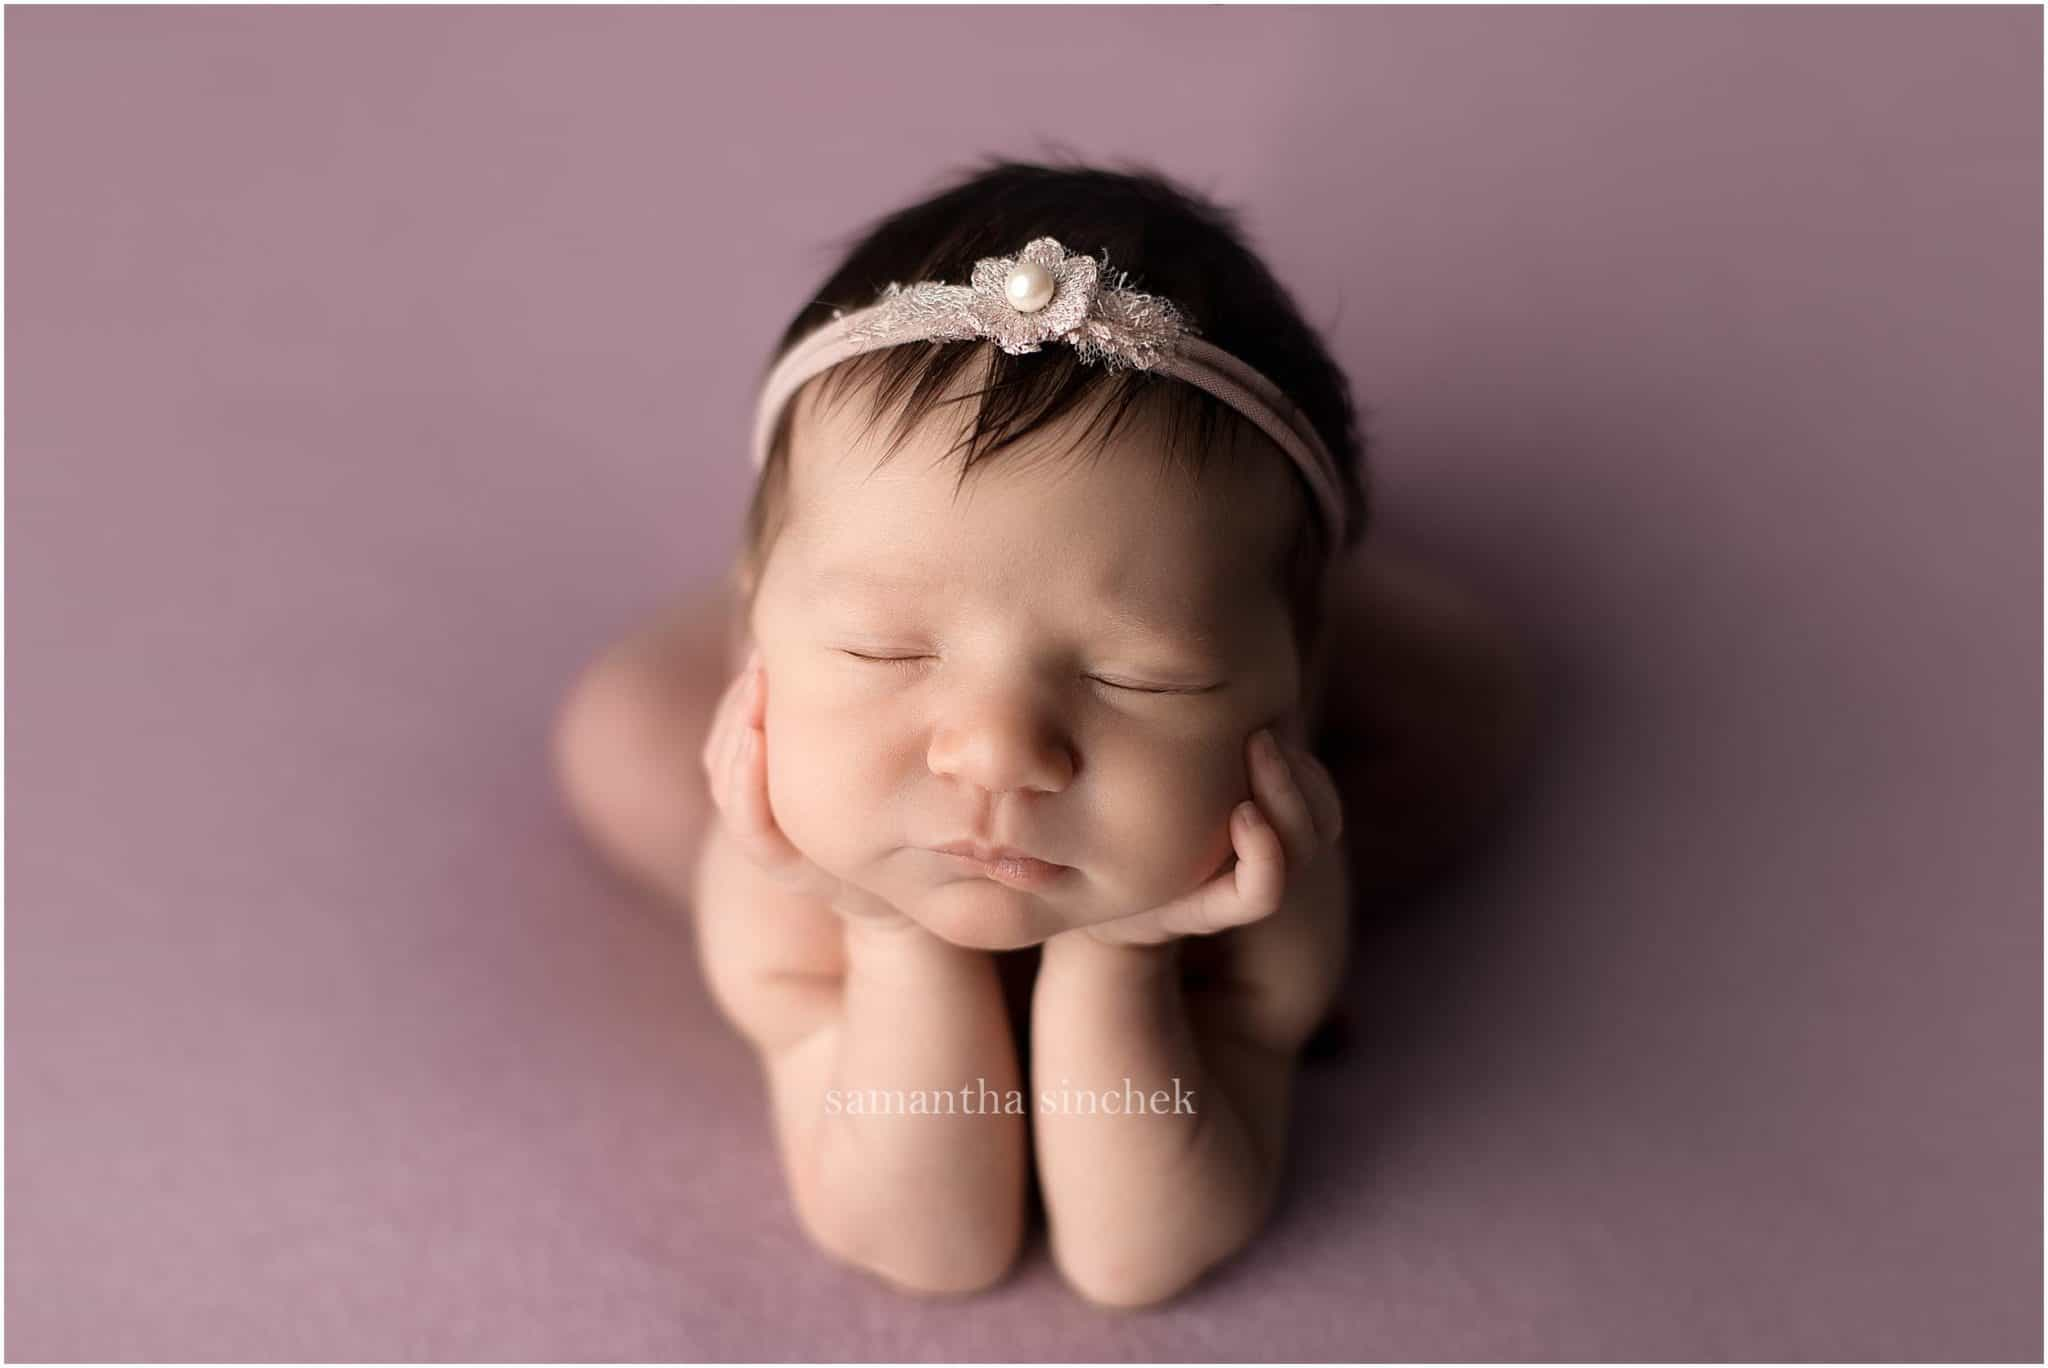 baby girl asleep on purple background with cincinnati newborn photographer Samantha Sinchek